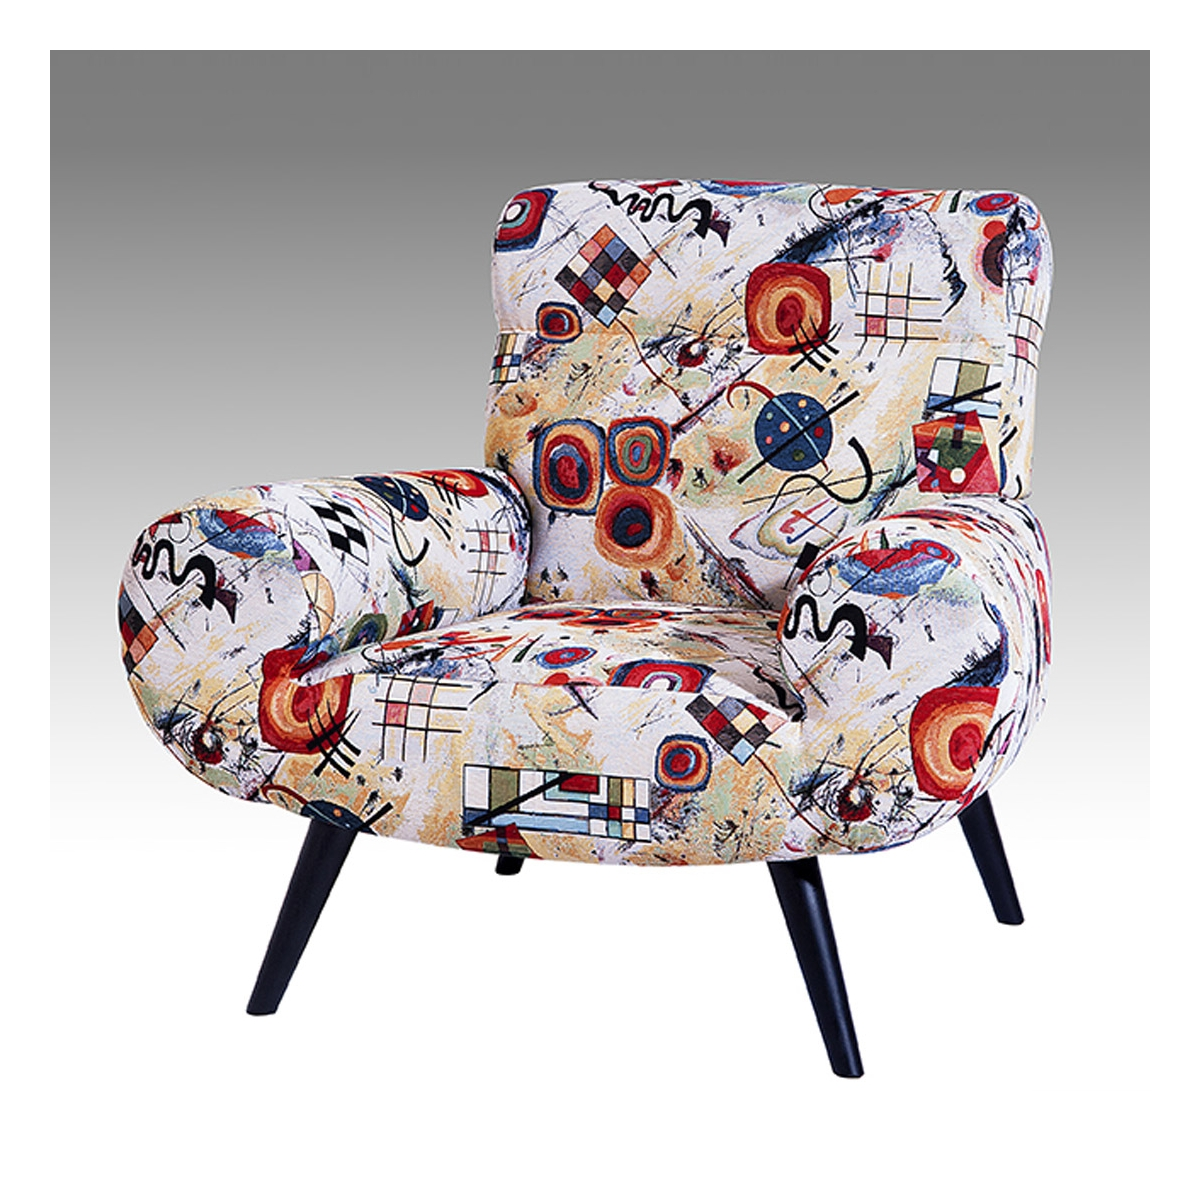 Fauteuil Contemporain : Fauteuil contemporain design calipso alc zendart